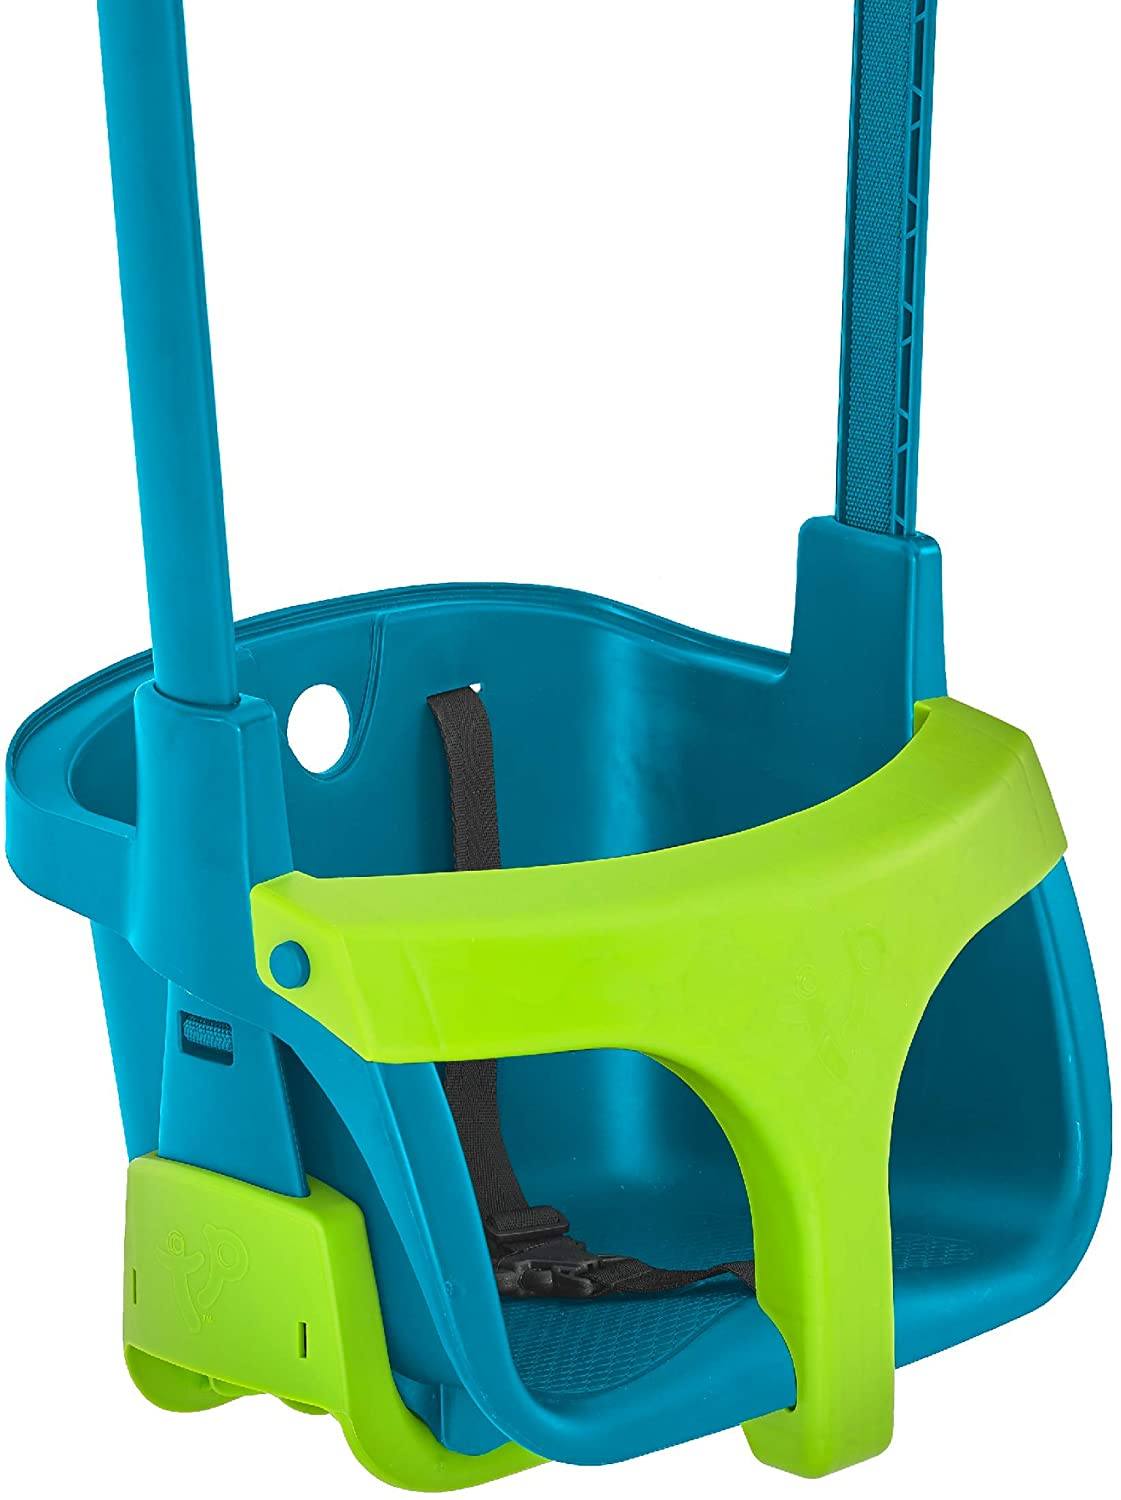 TP Toys Quadpod Adjustable 4 in 1 Best Outdoor Swing Seat